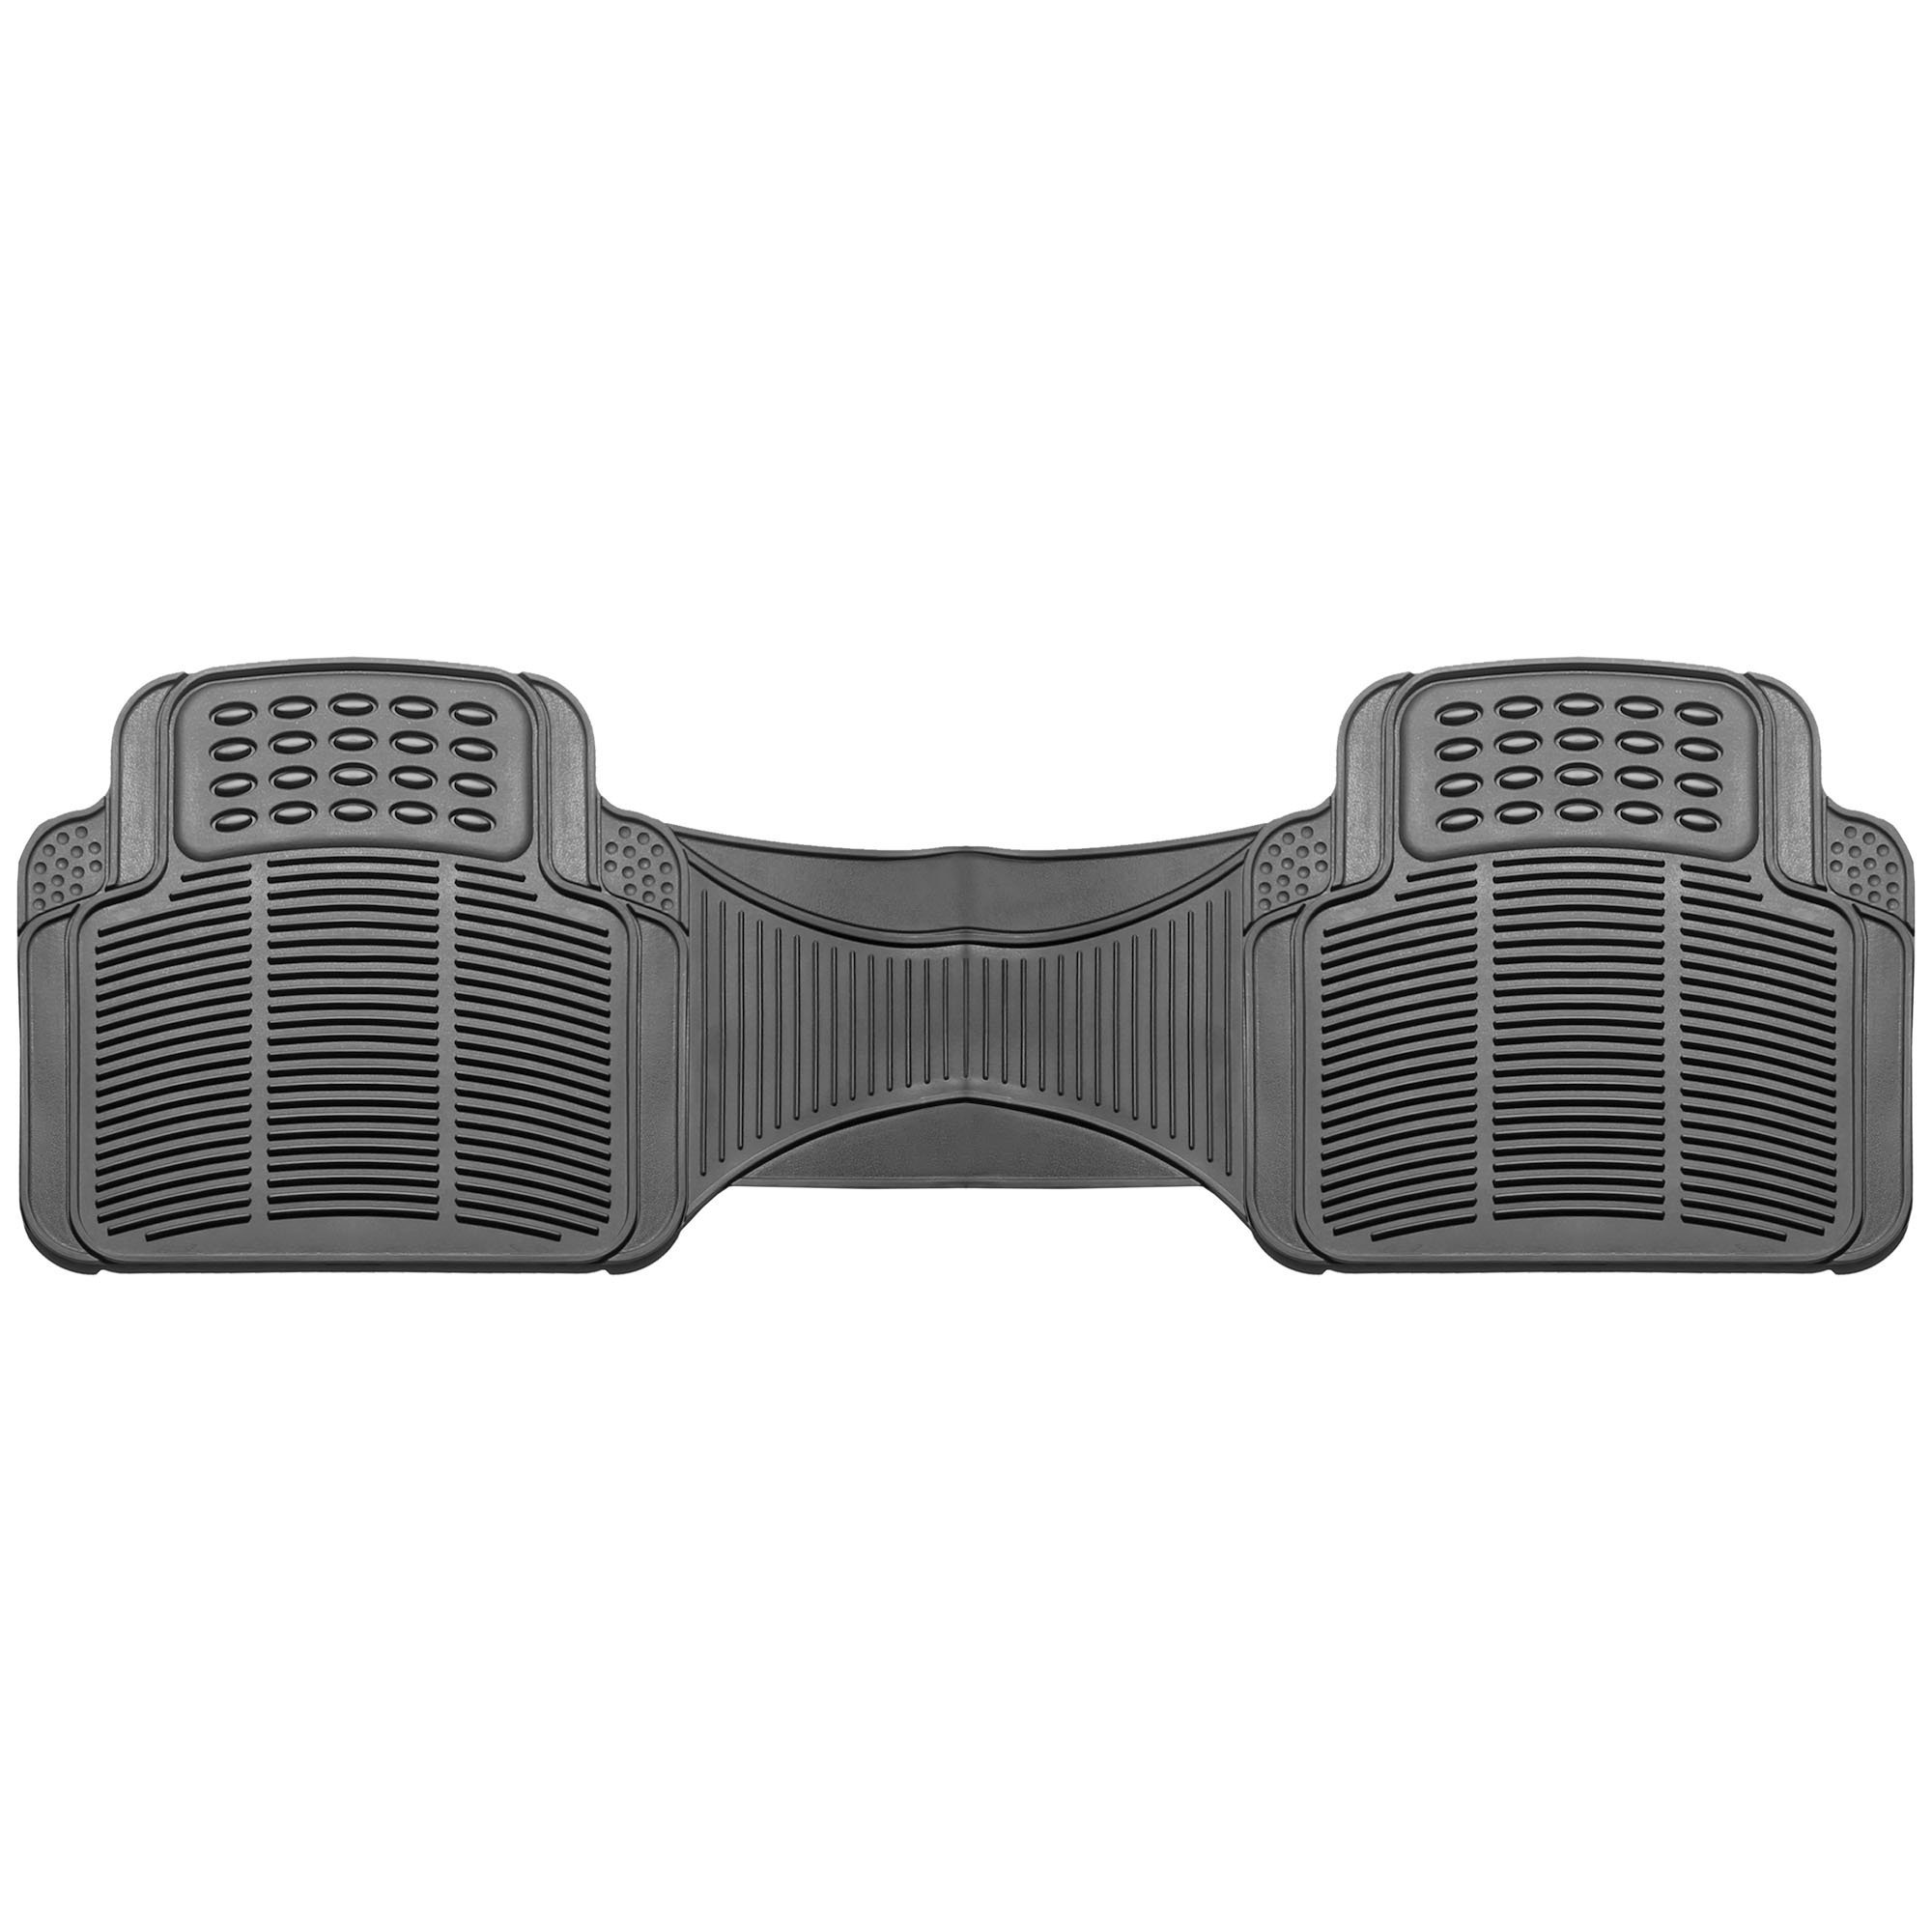 FH GROUP F11306-3ROW Quality All Weather Rubber Auto Floor Mats Liner - Gray by FH Group (Image #2)